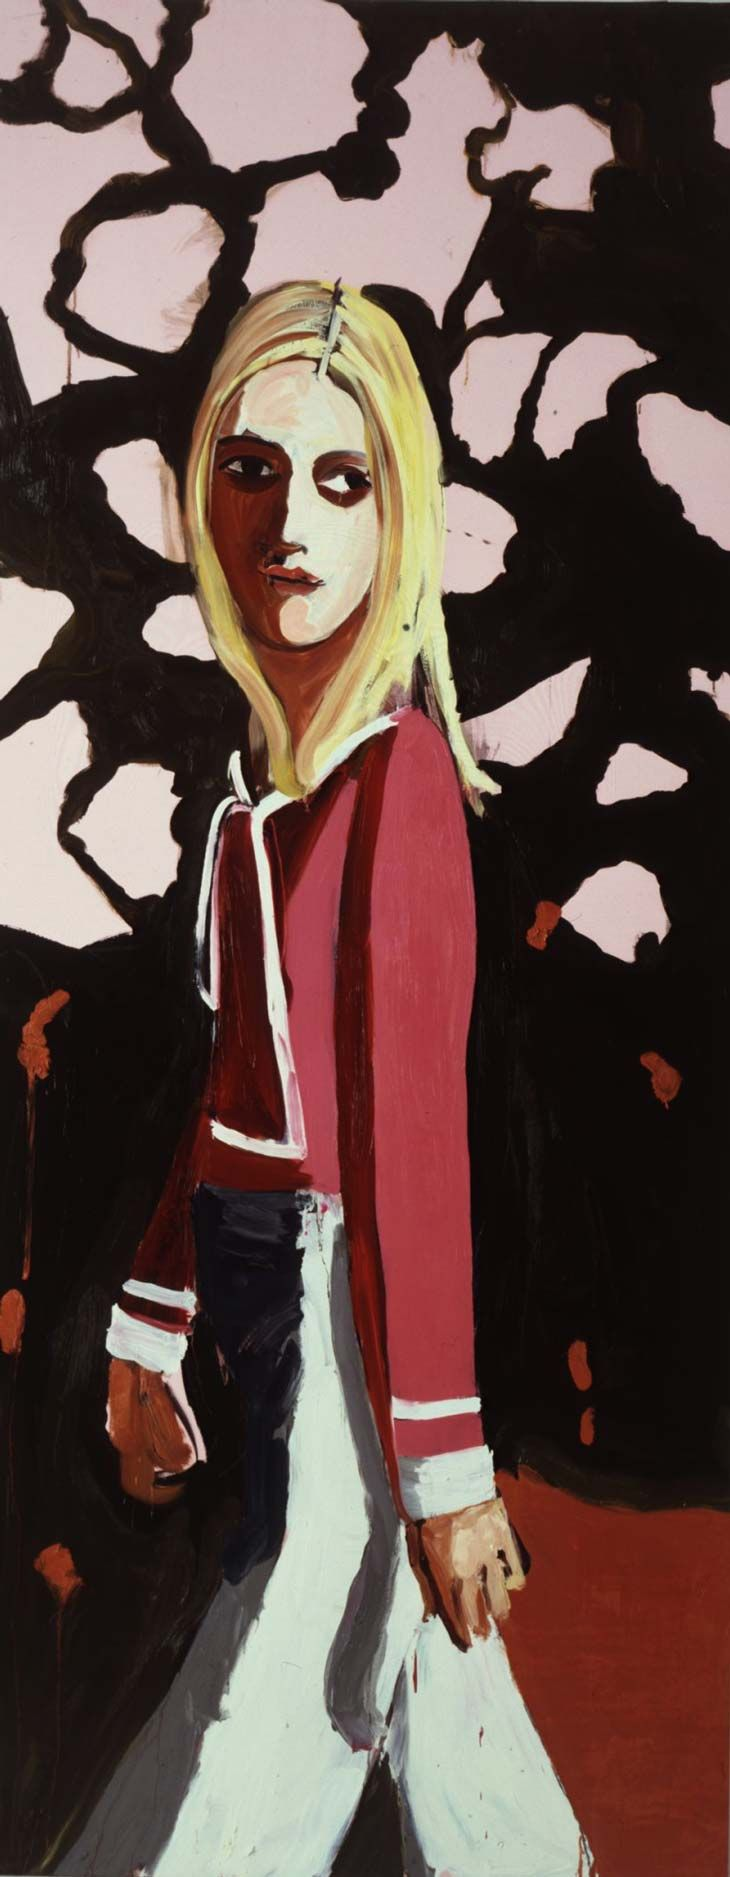 Chantal Joffe  Google Image Result for http://www.saatchi-gallery.co.uk/imgs/artists/joffe-chantal/chantal_joffe_woman_flowers.jpgBoards 305, Chantal Joffe, Viewer 2004 Oil, Artists Profile, Joffe Woman, Flowers Chants Joffe, Art Fanart Quotes Etc, Flower 2004, 124 Cm